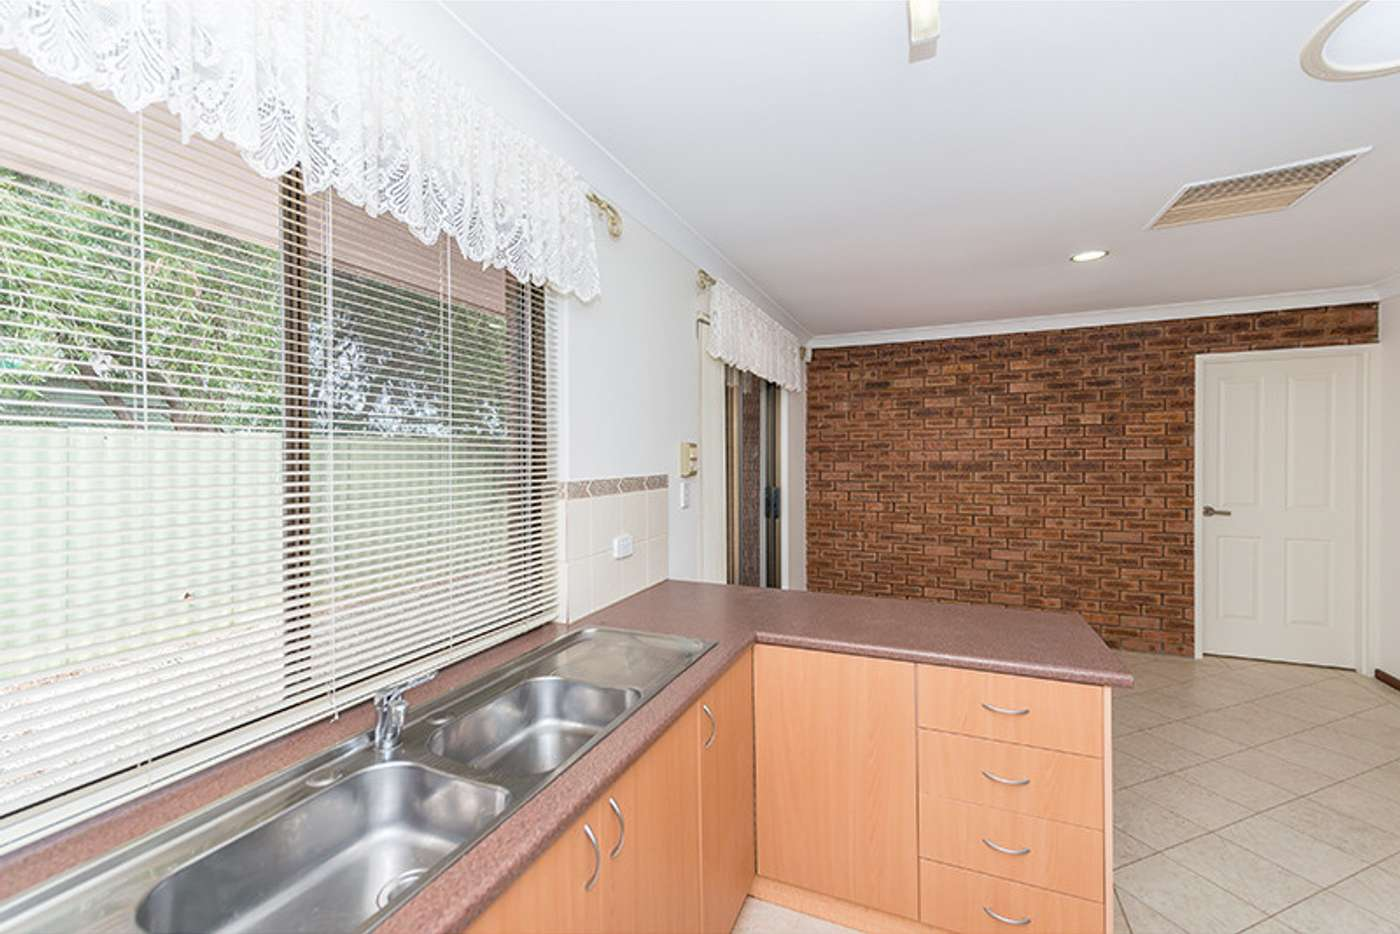 Sixth view of Homely unit listing, 48 Davesia Mews, Ferndale WA 6148